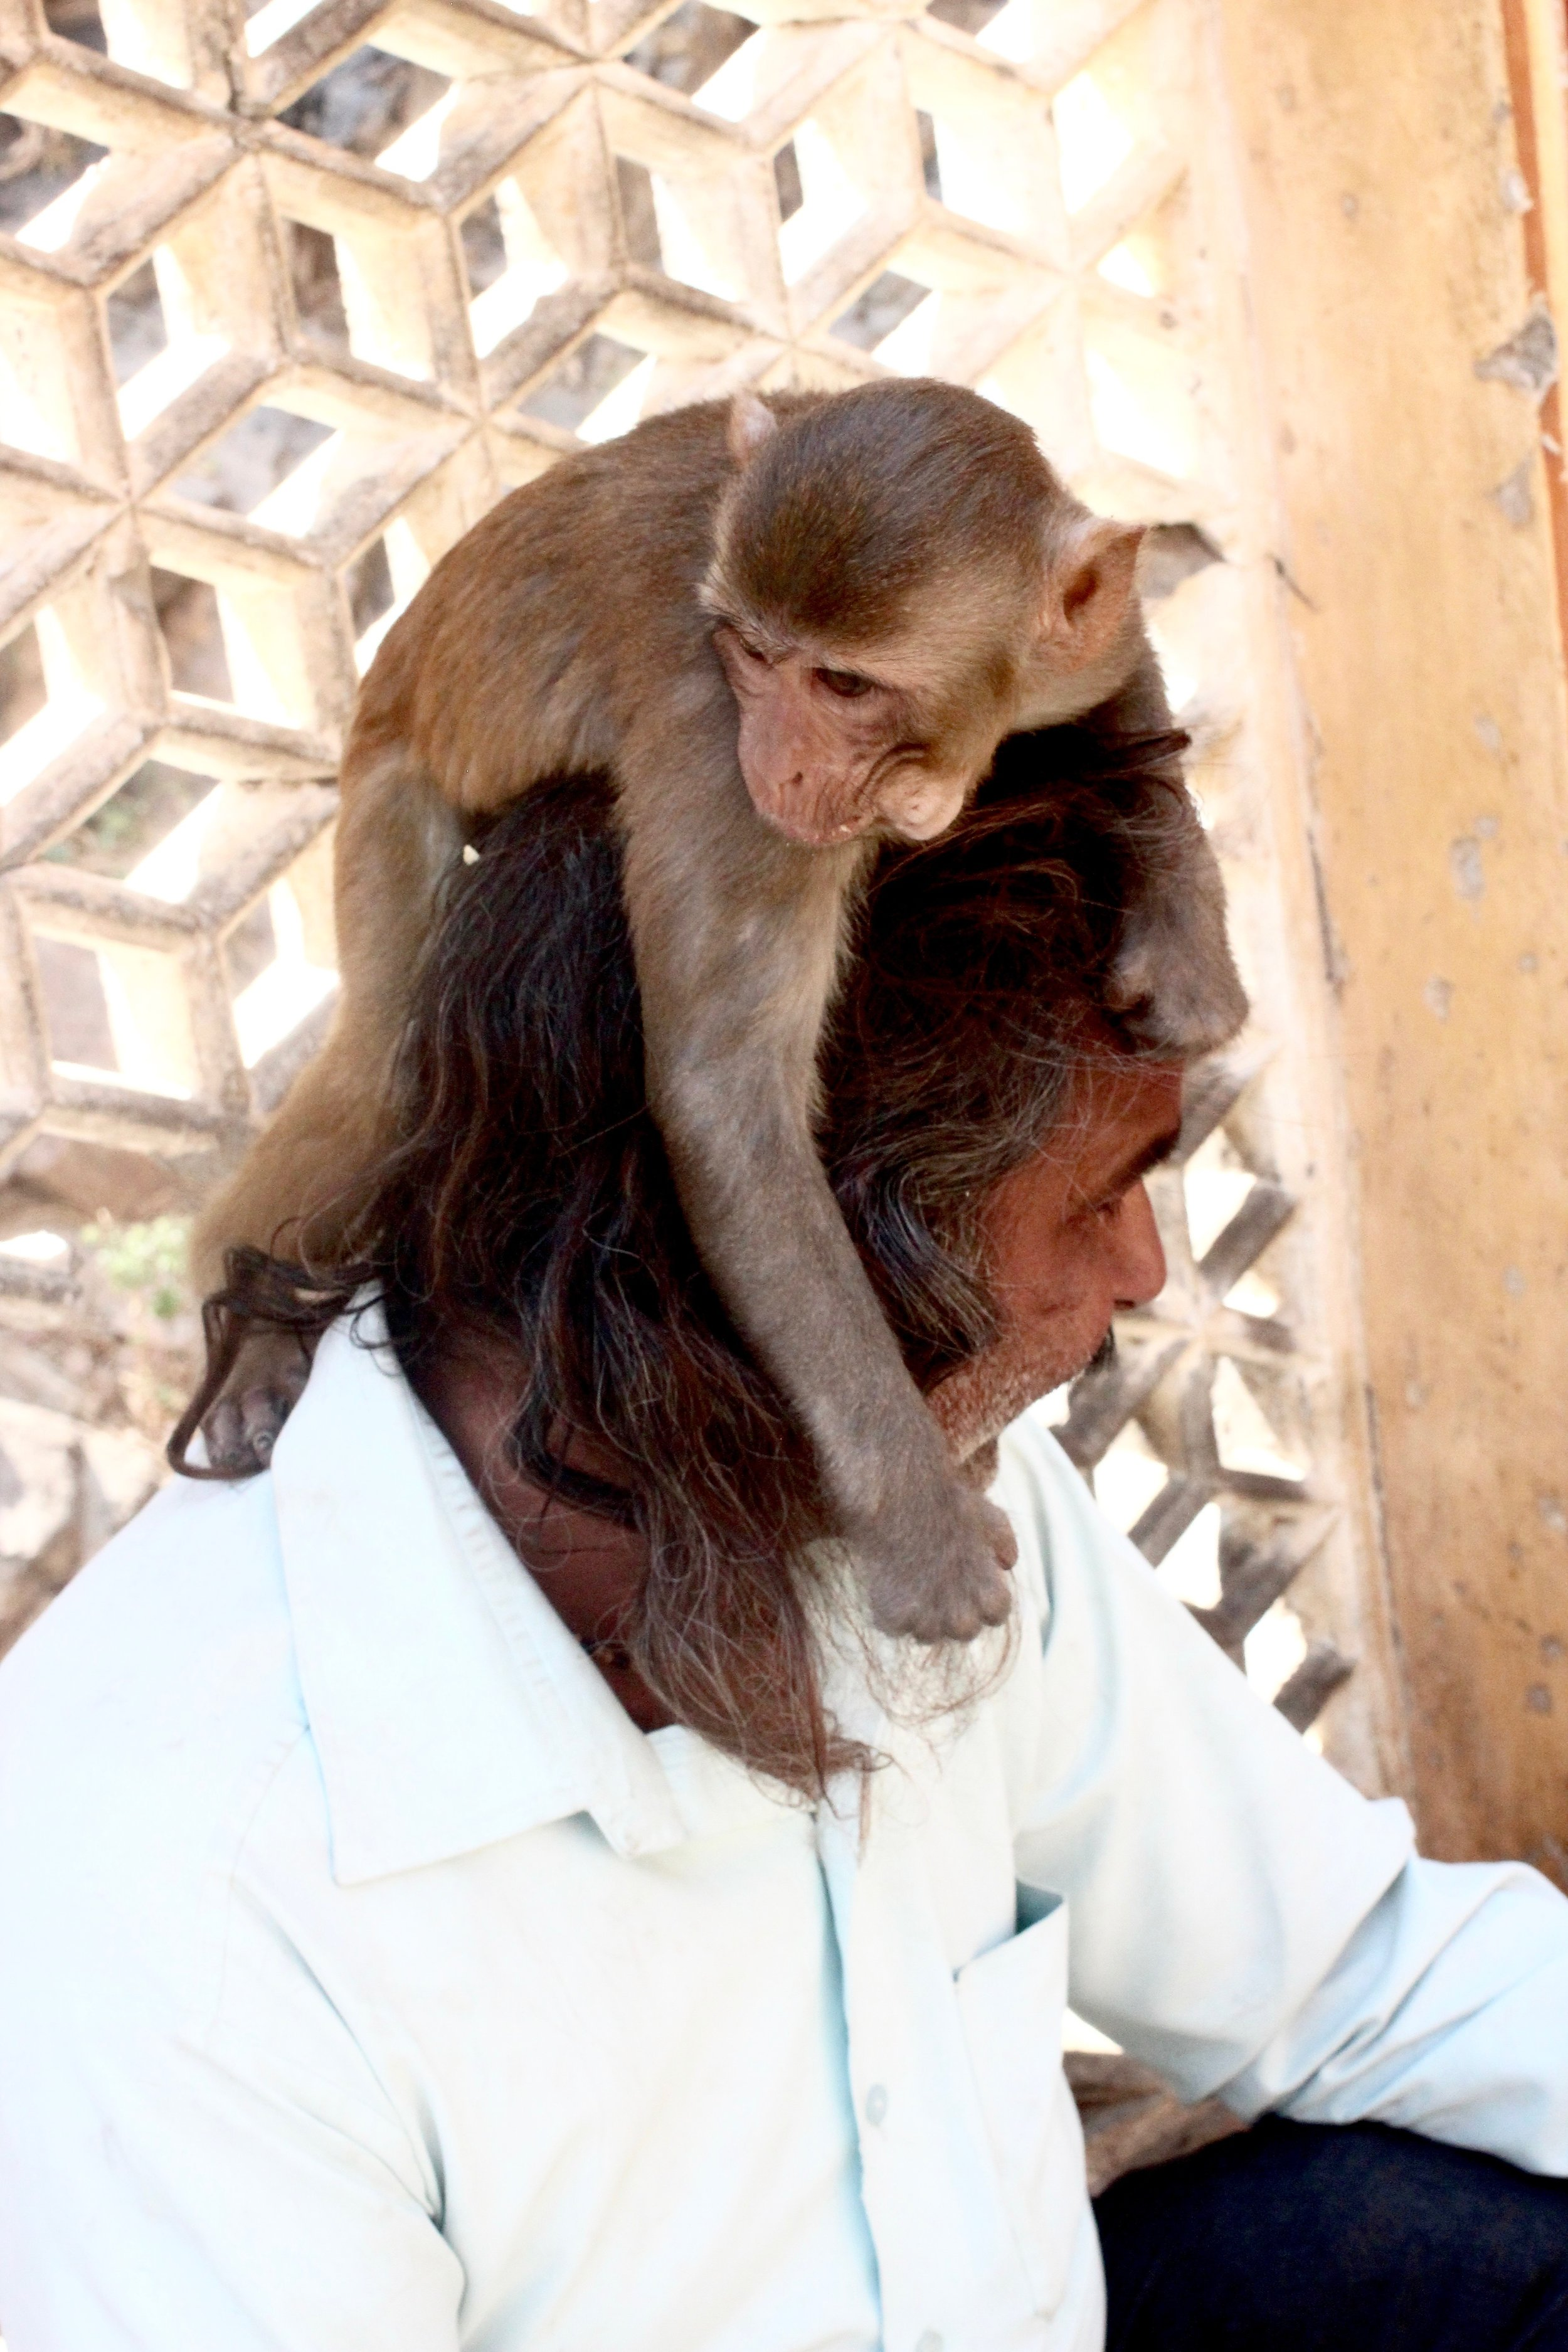 Meet the Monkey Man --he's been featured on Nat Geo and BBC for his work at the Monkey Temple.